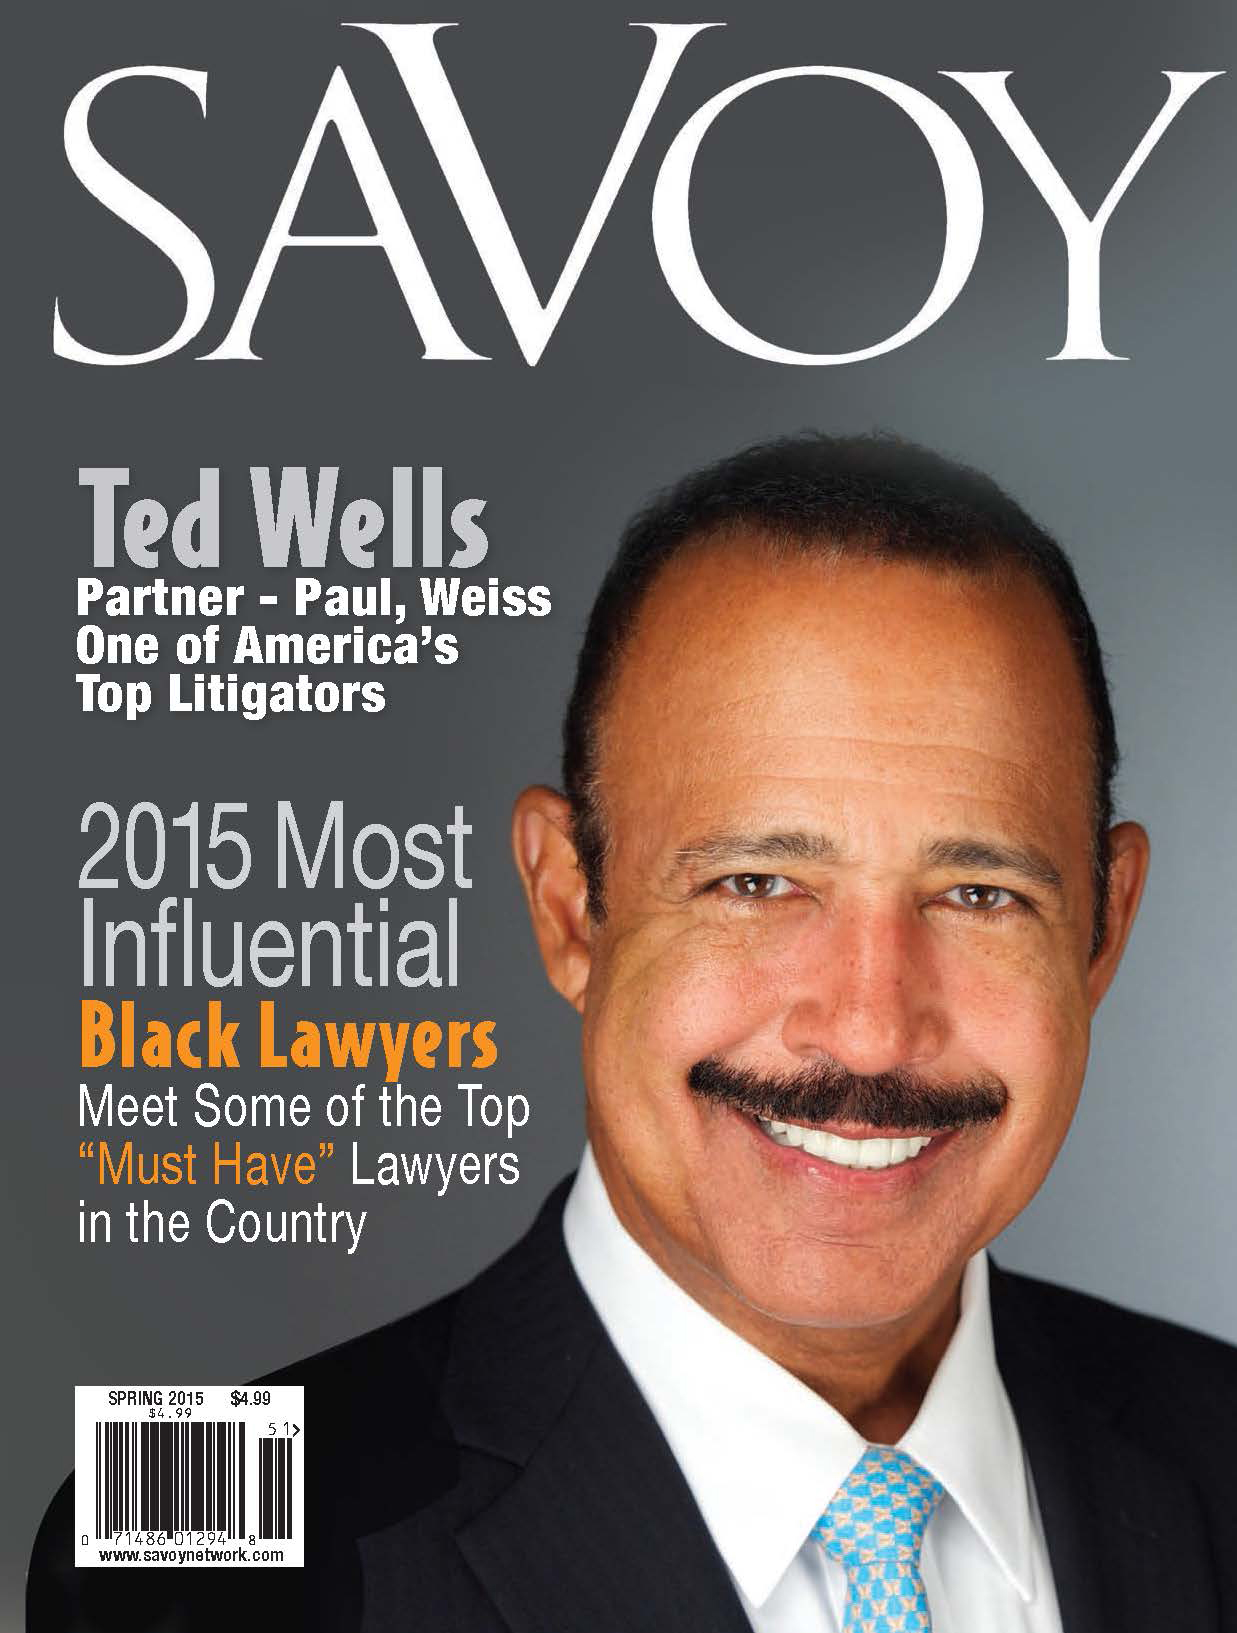 Savoy Magazine Announces The Most Influential Black